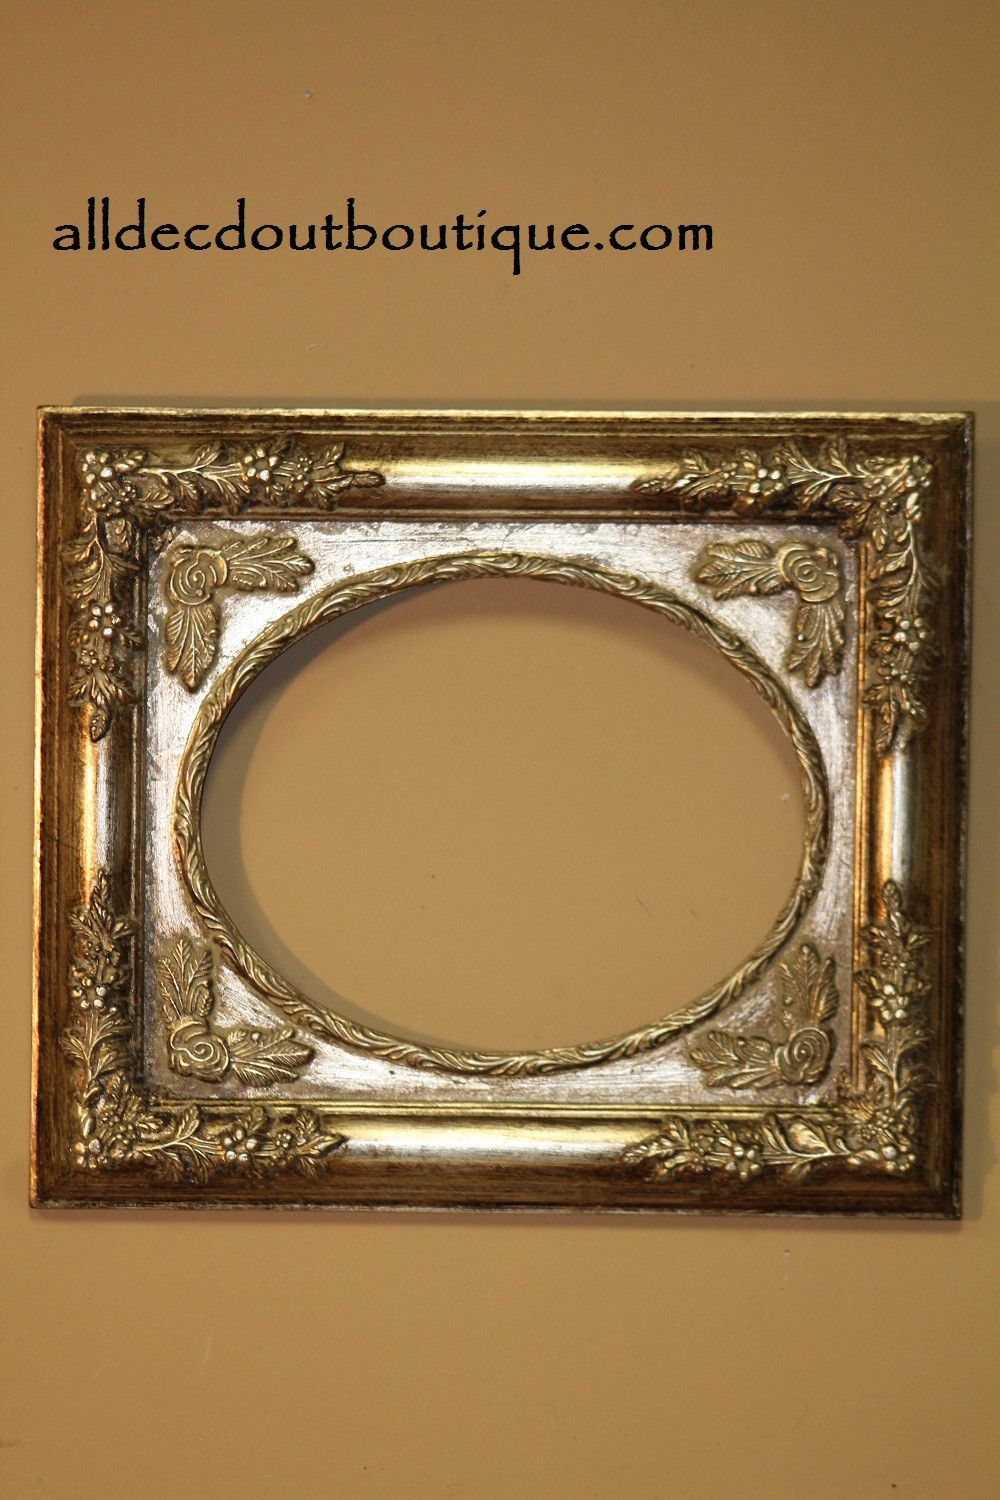 Decorative Picture Frame | Wall Hanging 8"|1000|1500|?|15a83c38fdd645d4ba624a96d6650999|False|UNLIKELY|0.3280537724494934